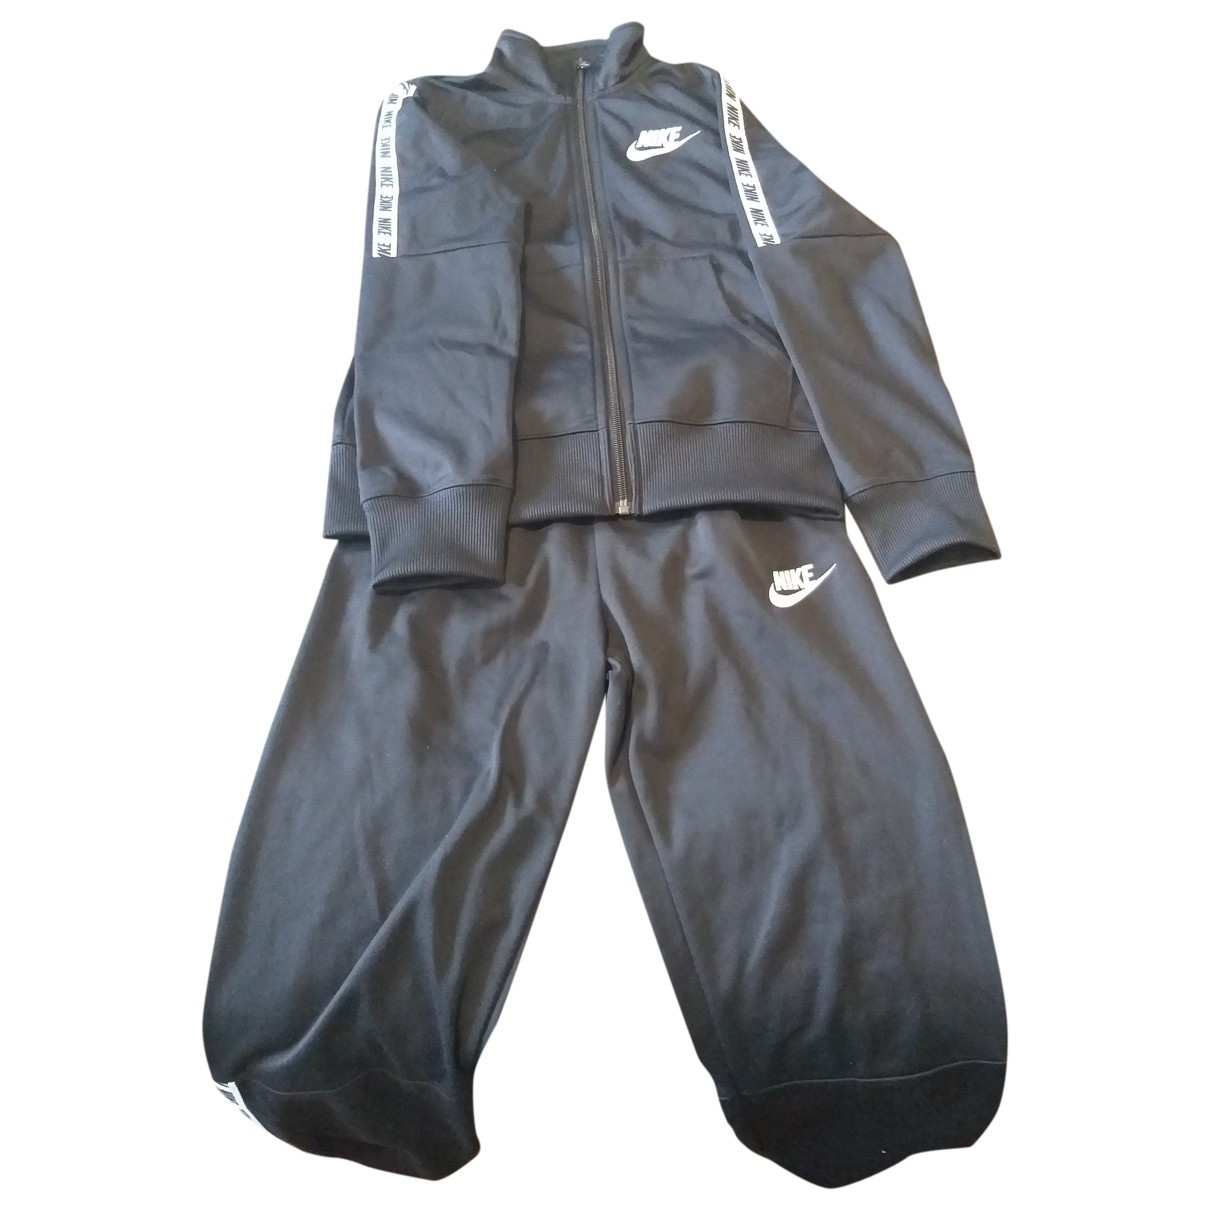 Nike \N Black Outfits for Kids 10 years - up to 142cm FR